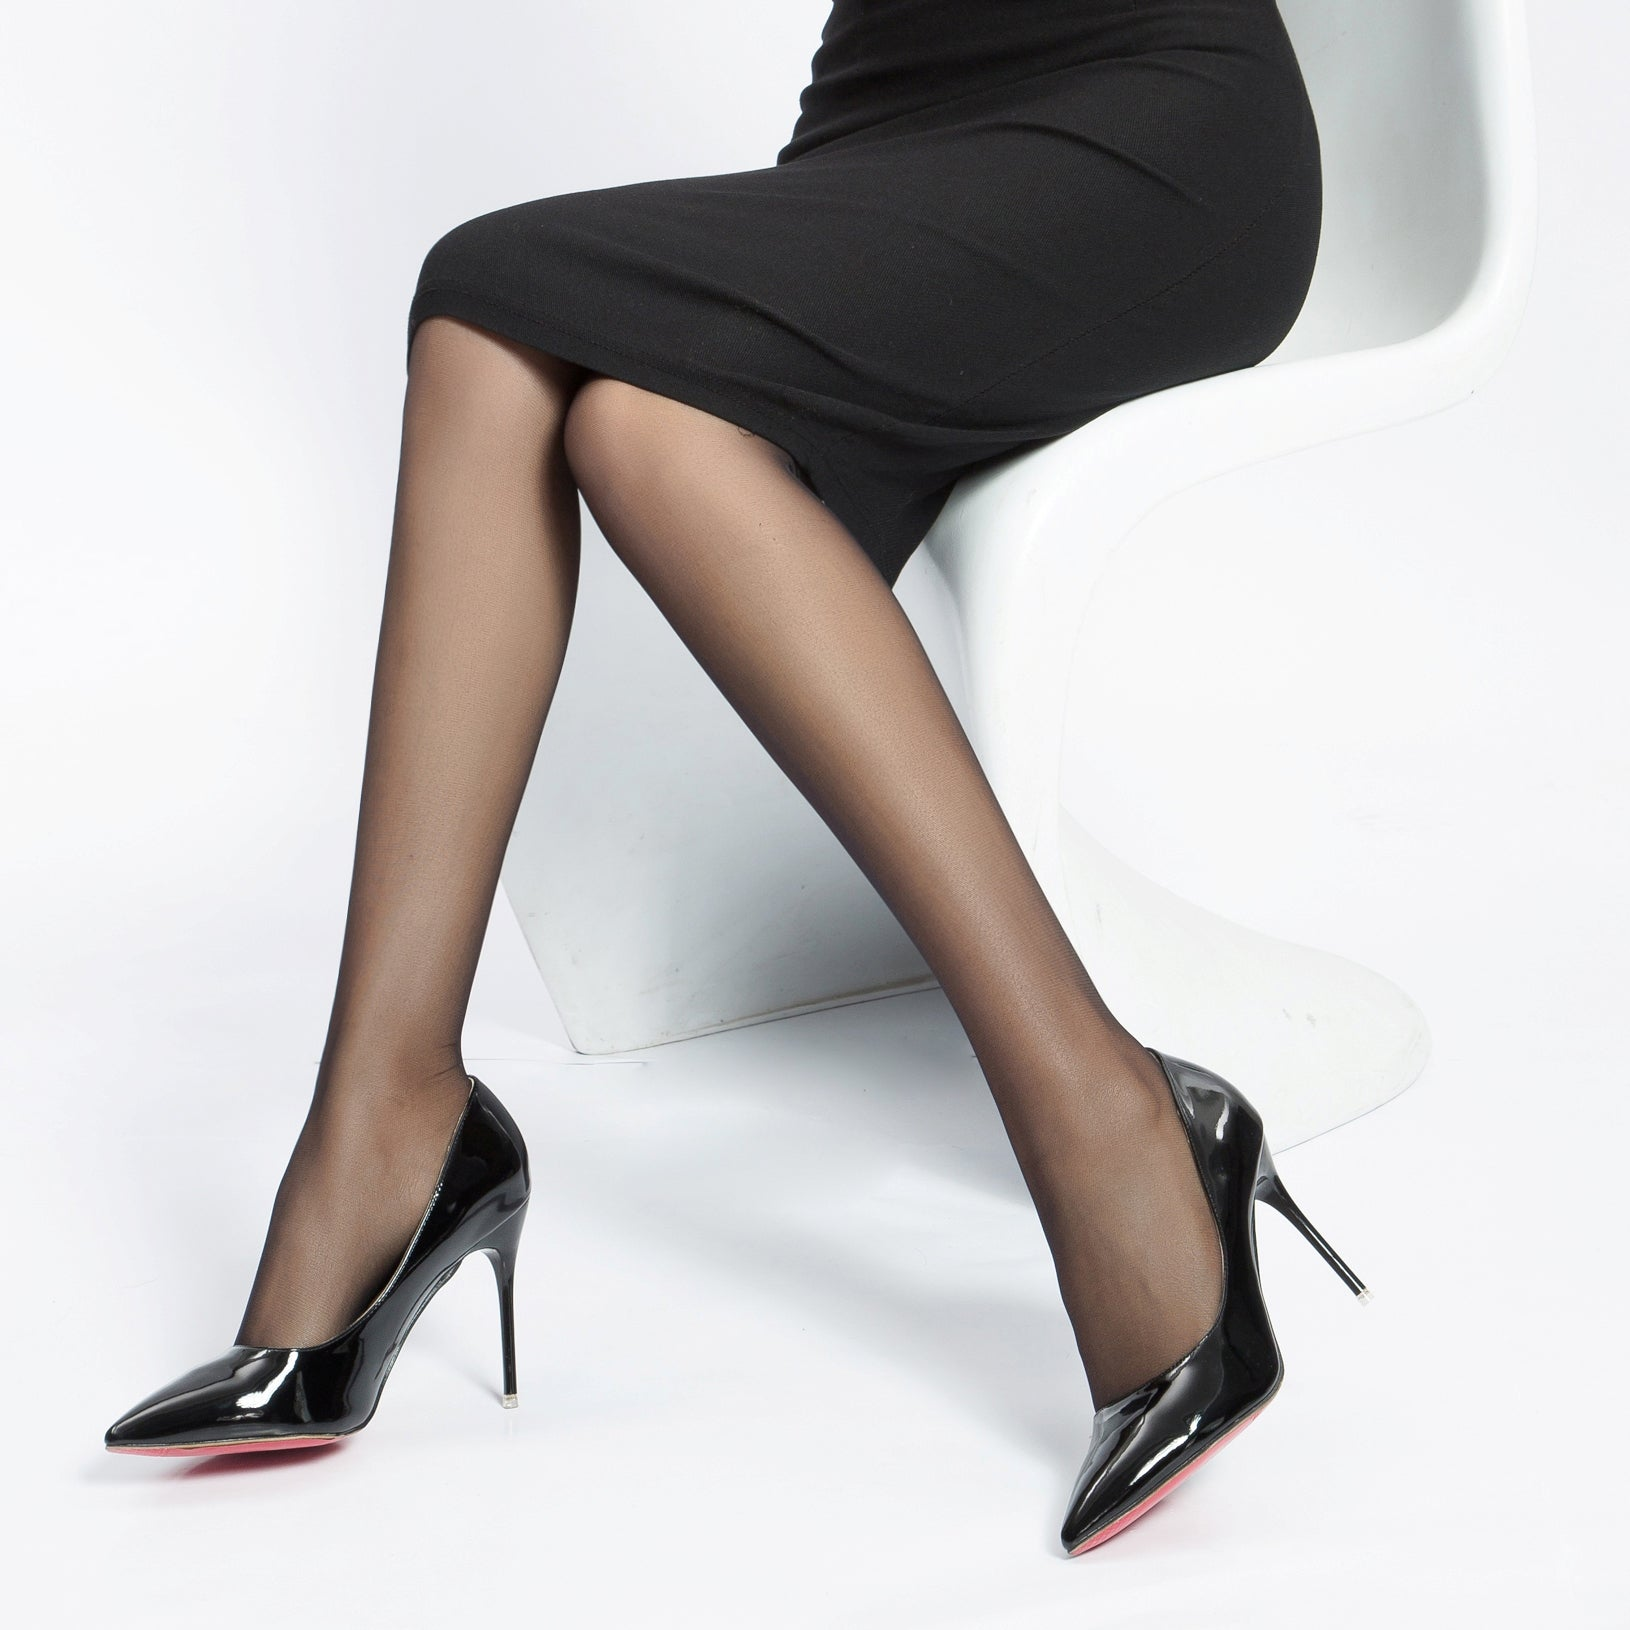 Absolutely Ultra Sheer 8 Den, Silk Reflections Control Top, Reinforced Toe Pantyhose .